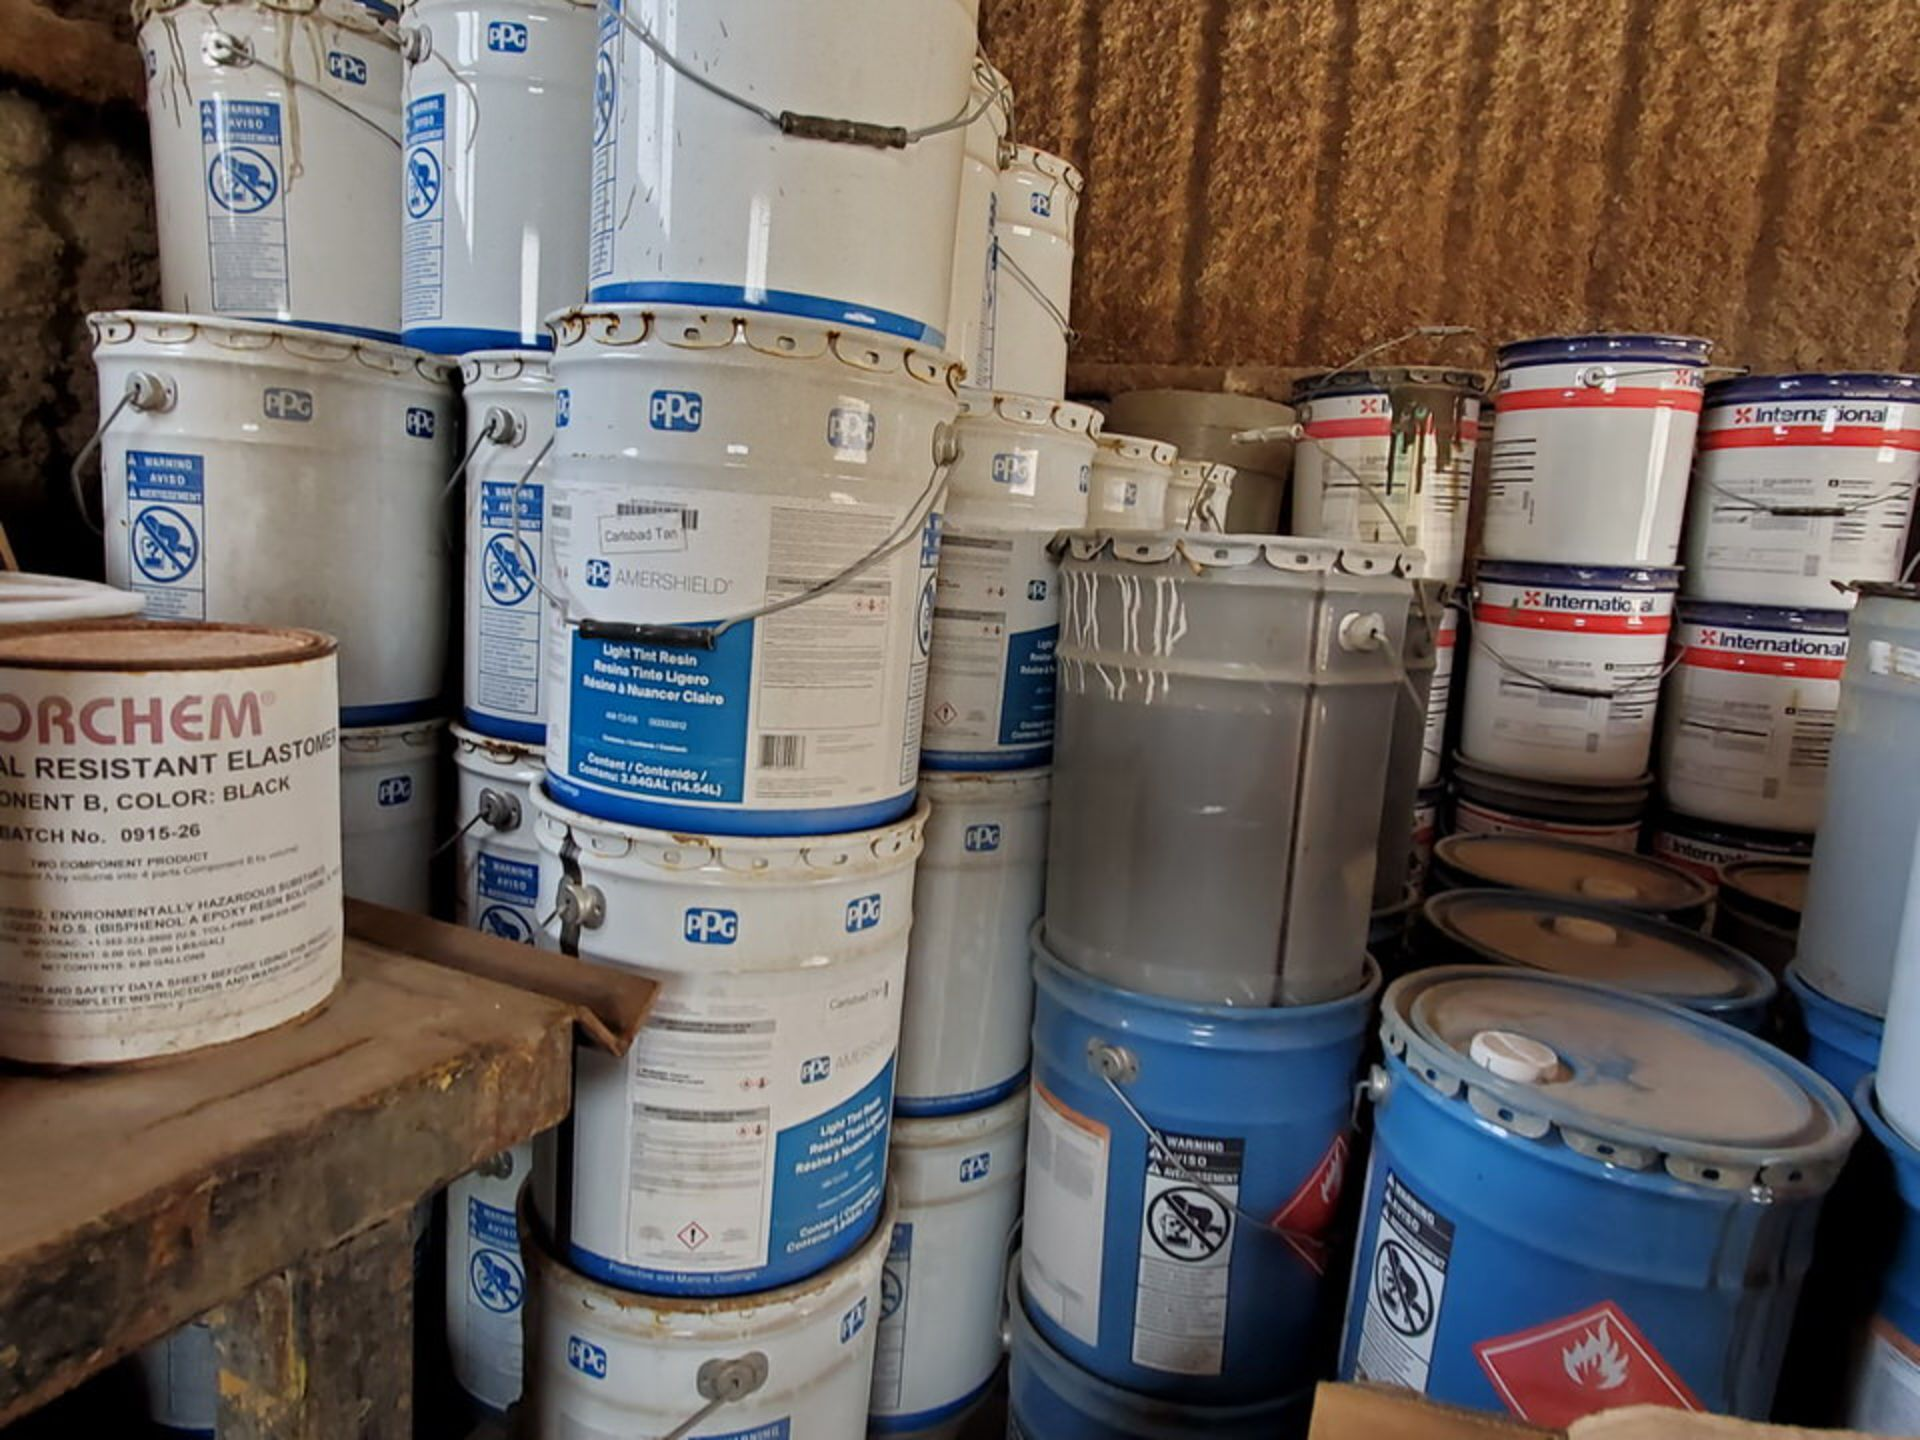 Assorted Paints & Marine Coatings Mfg's: PPG, Intl. & Other - Image 6 of 10